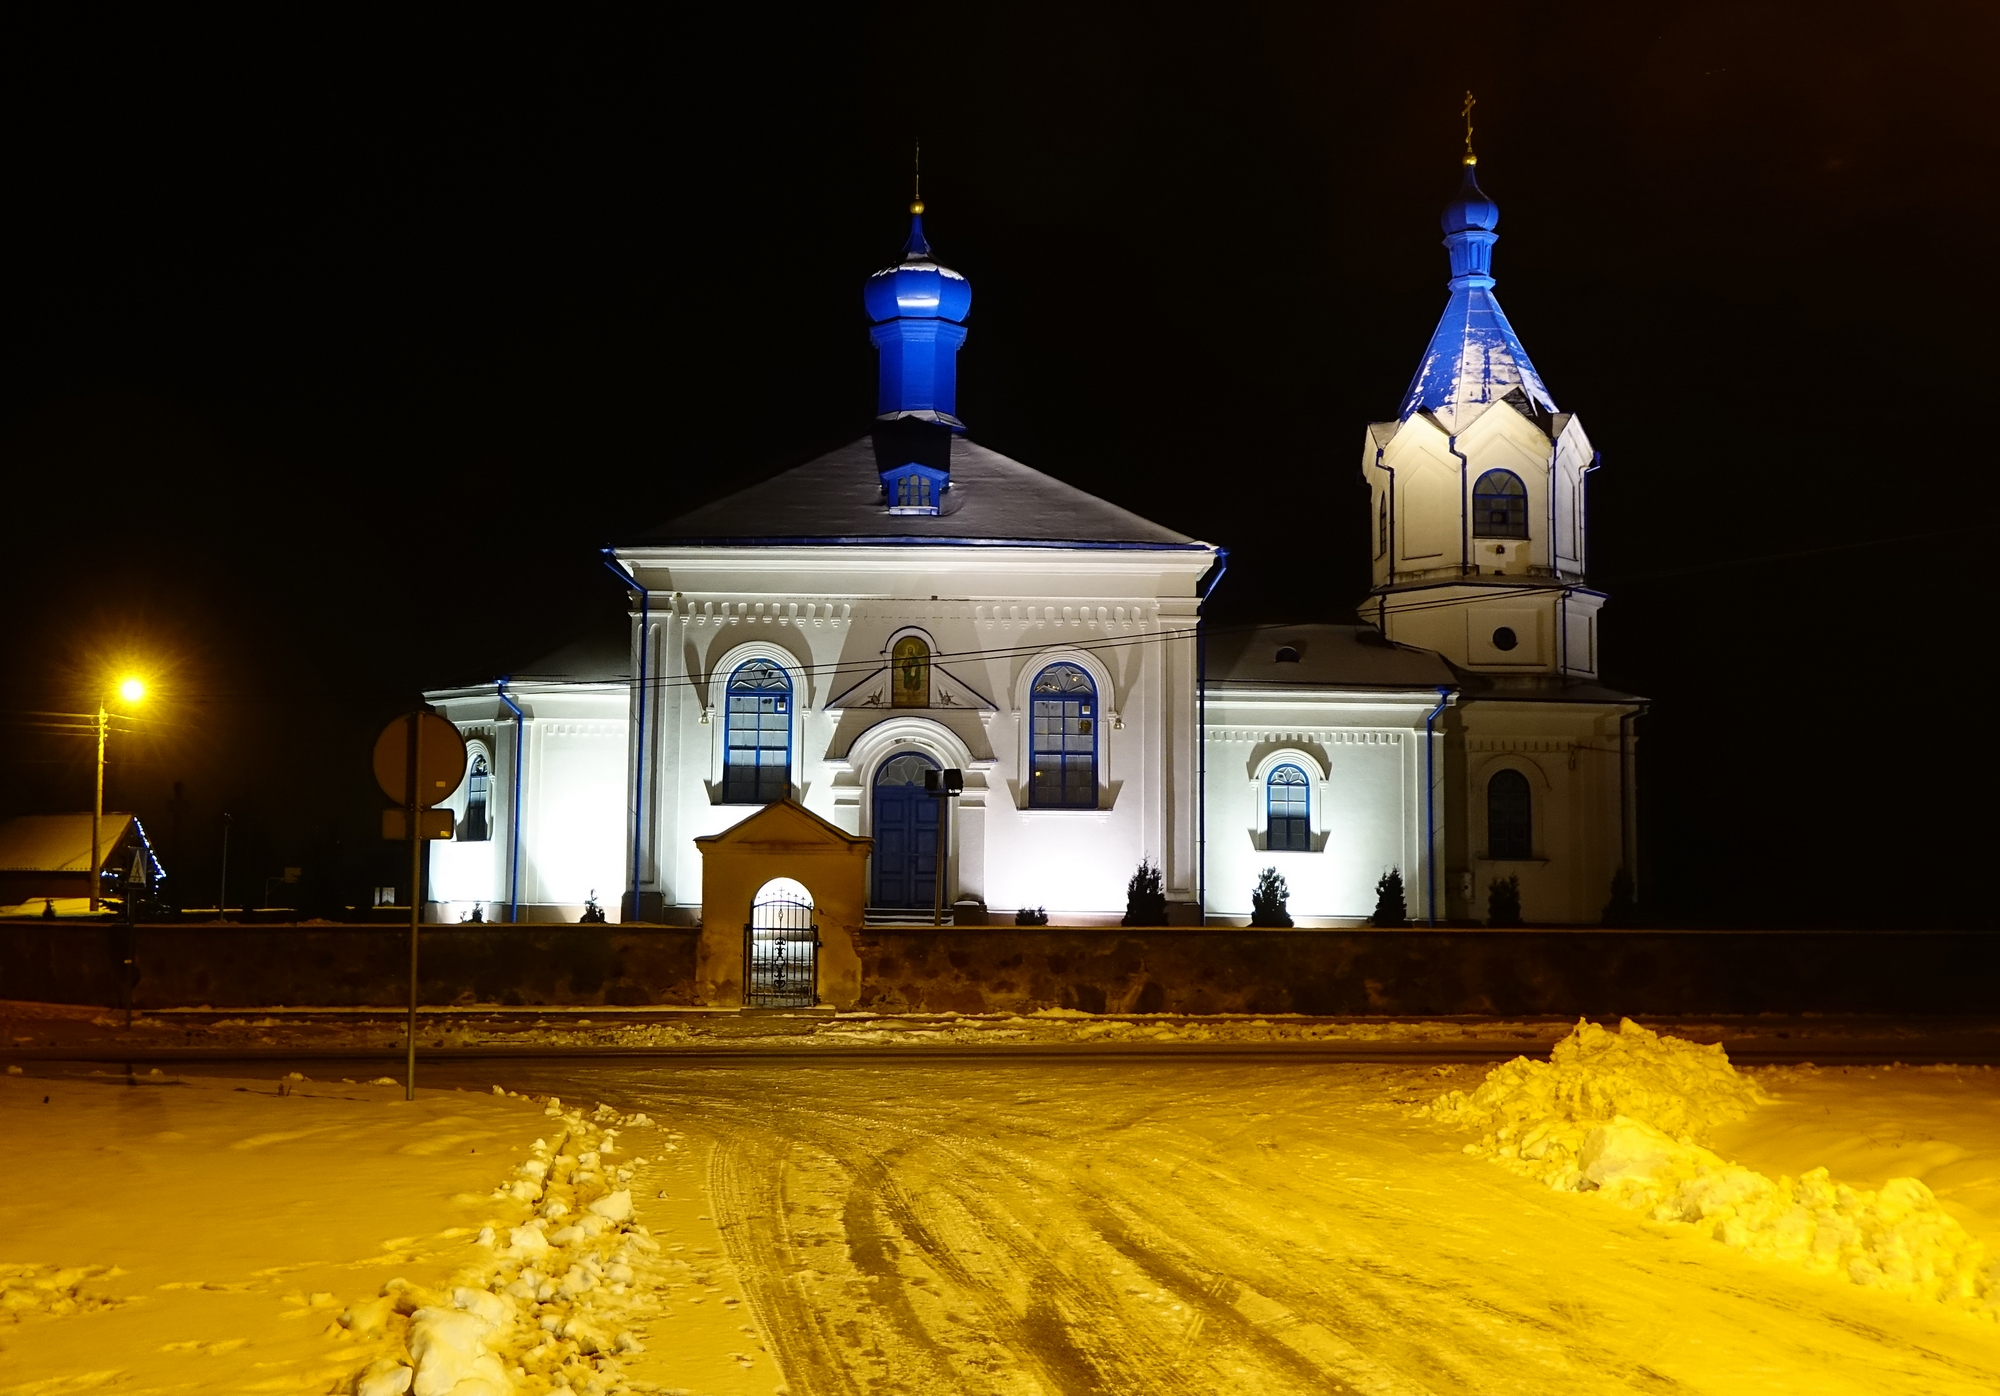 The Orthodox church in Dubiny